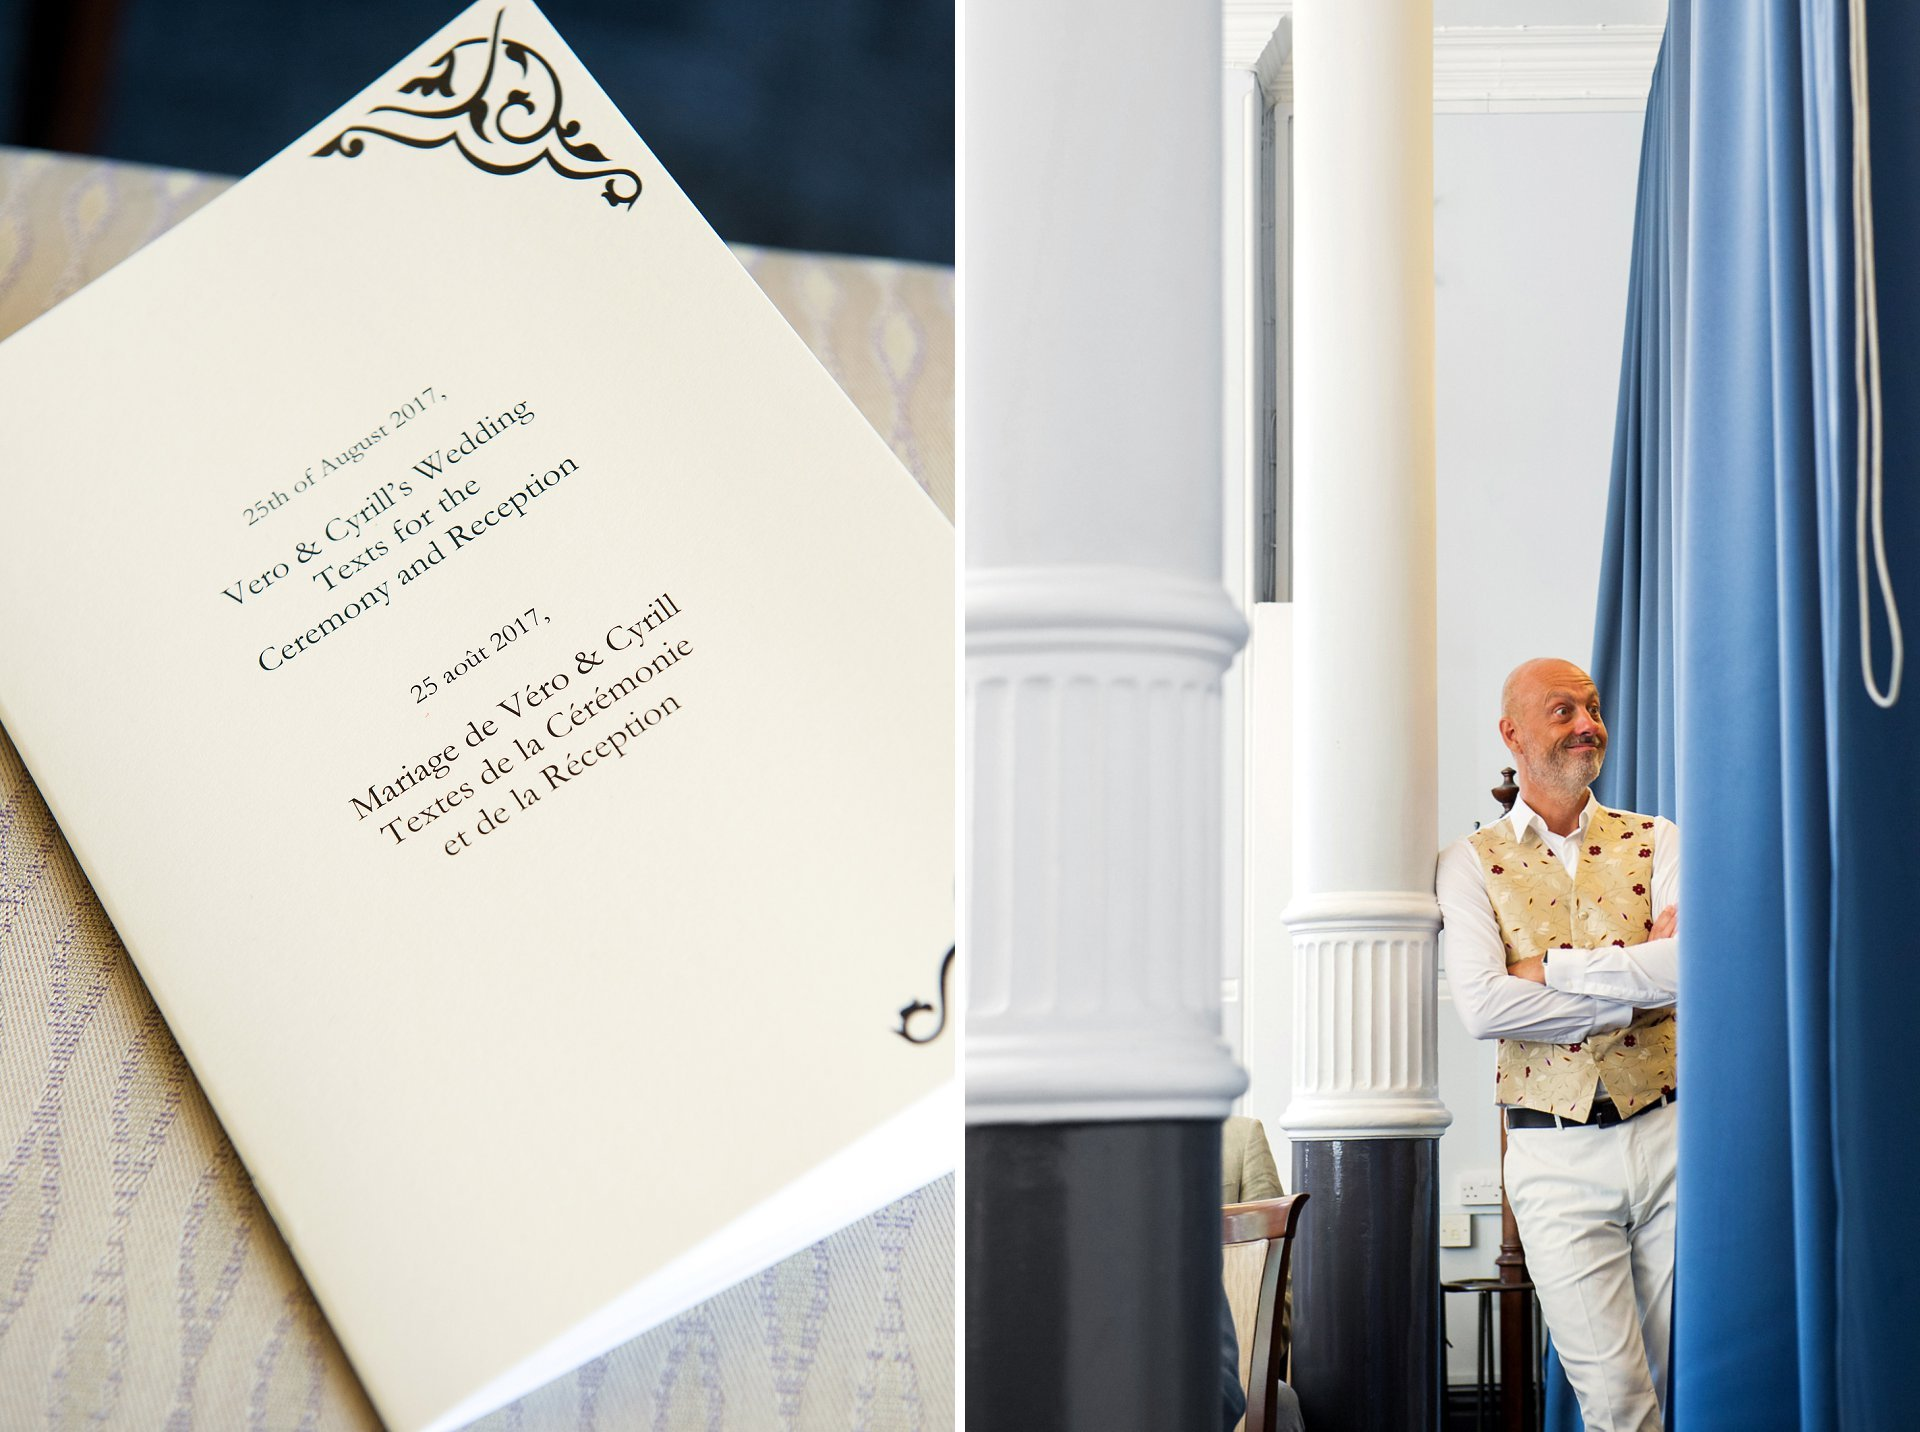 Vero and Cyrill's order of service in English and French for their London Registry Office wedding in the Mayfair Room at Mayfair Library